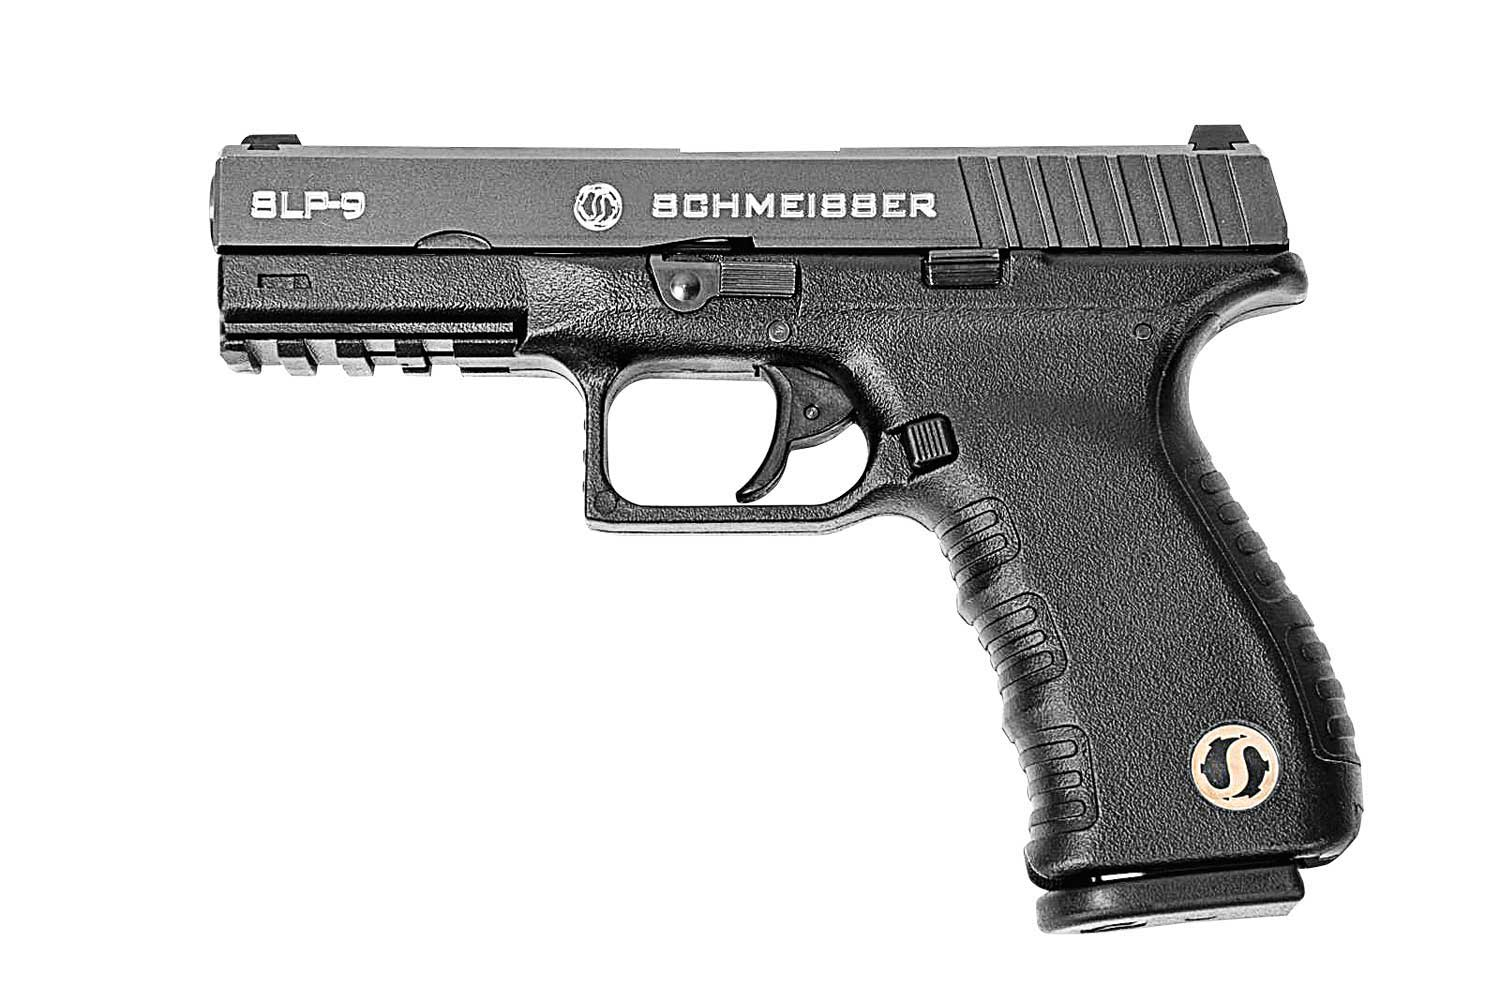 Schmeisser SLP-9 9mm pistol black left profile